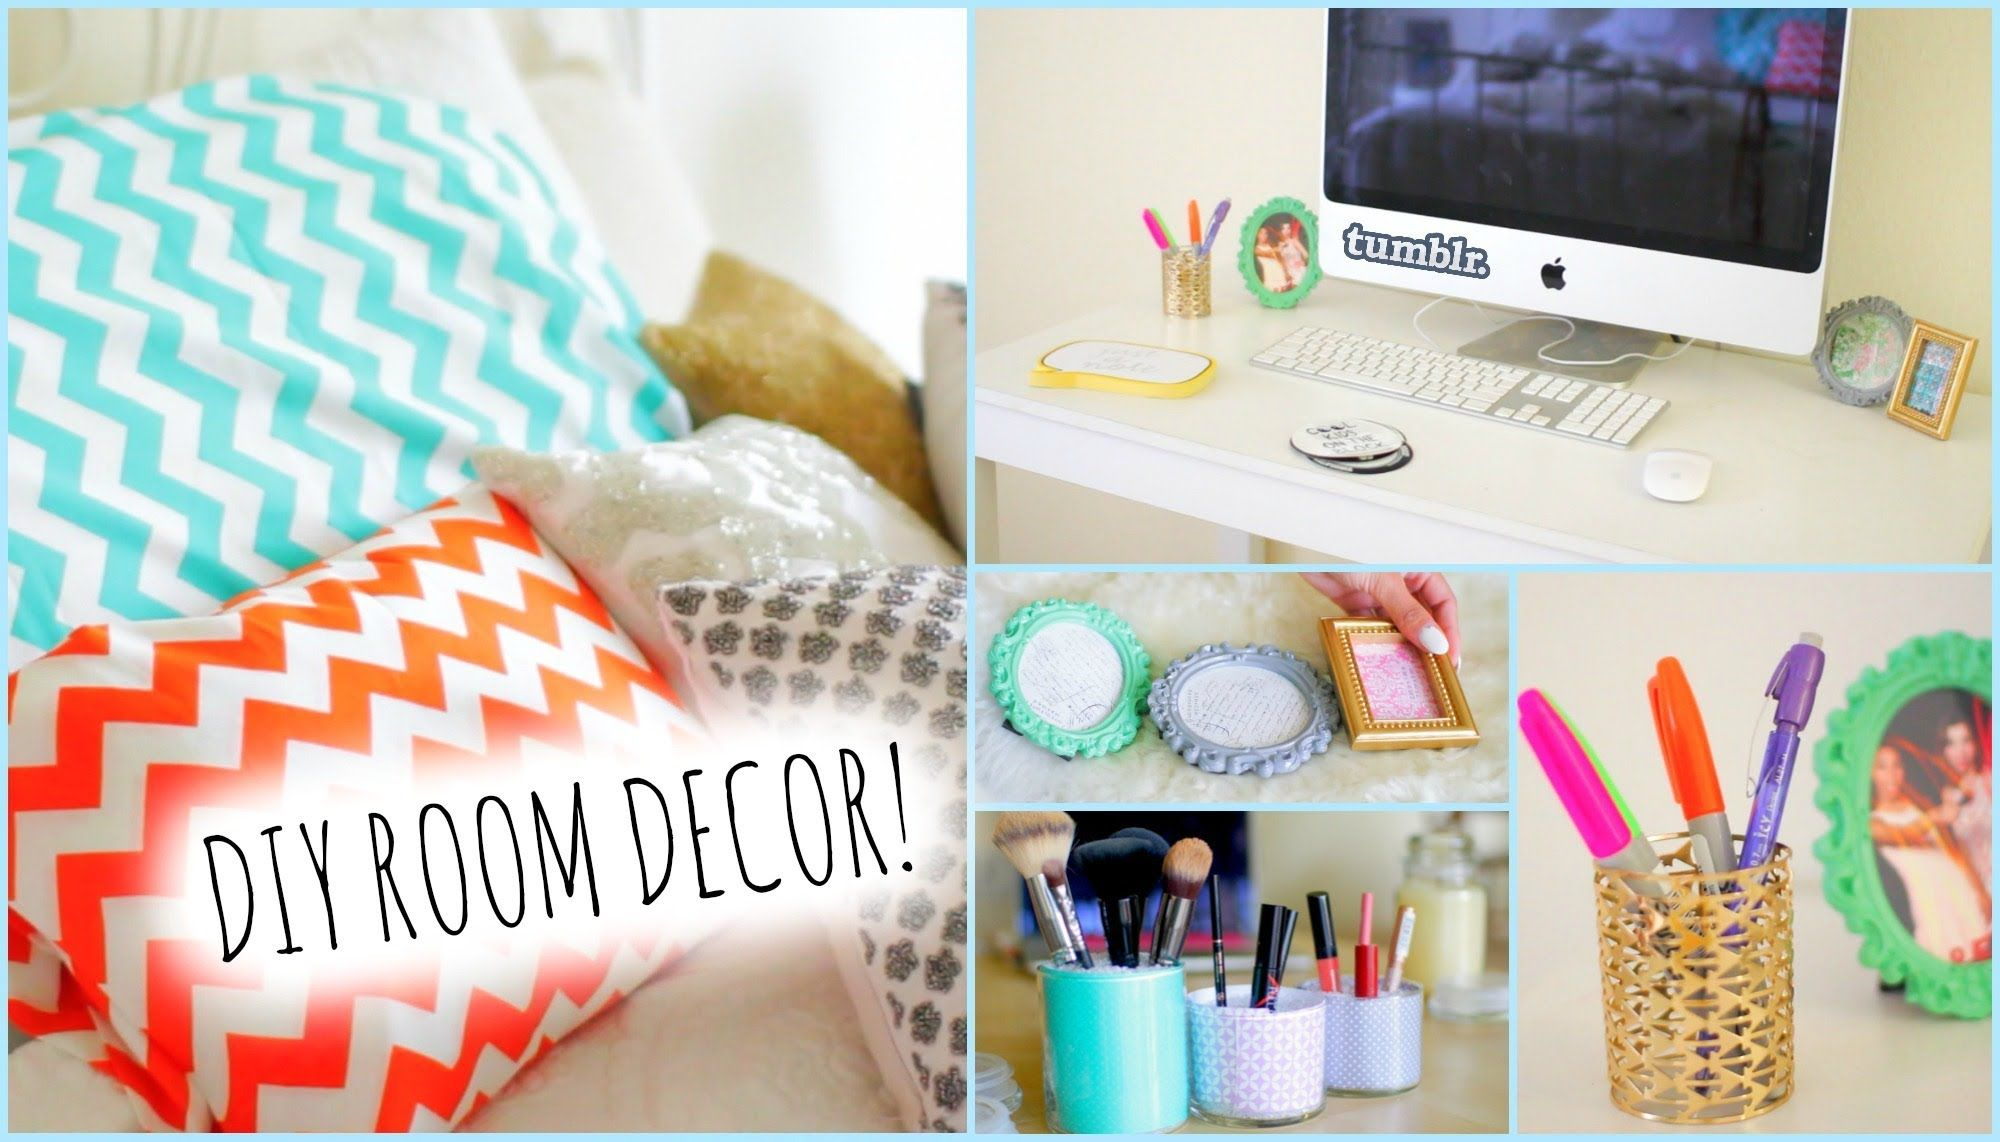 Diy bedroom decor ideas pinterest - Diy Room Decorations For Cheap How To Stay Organized